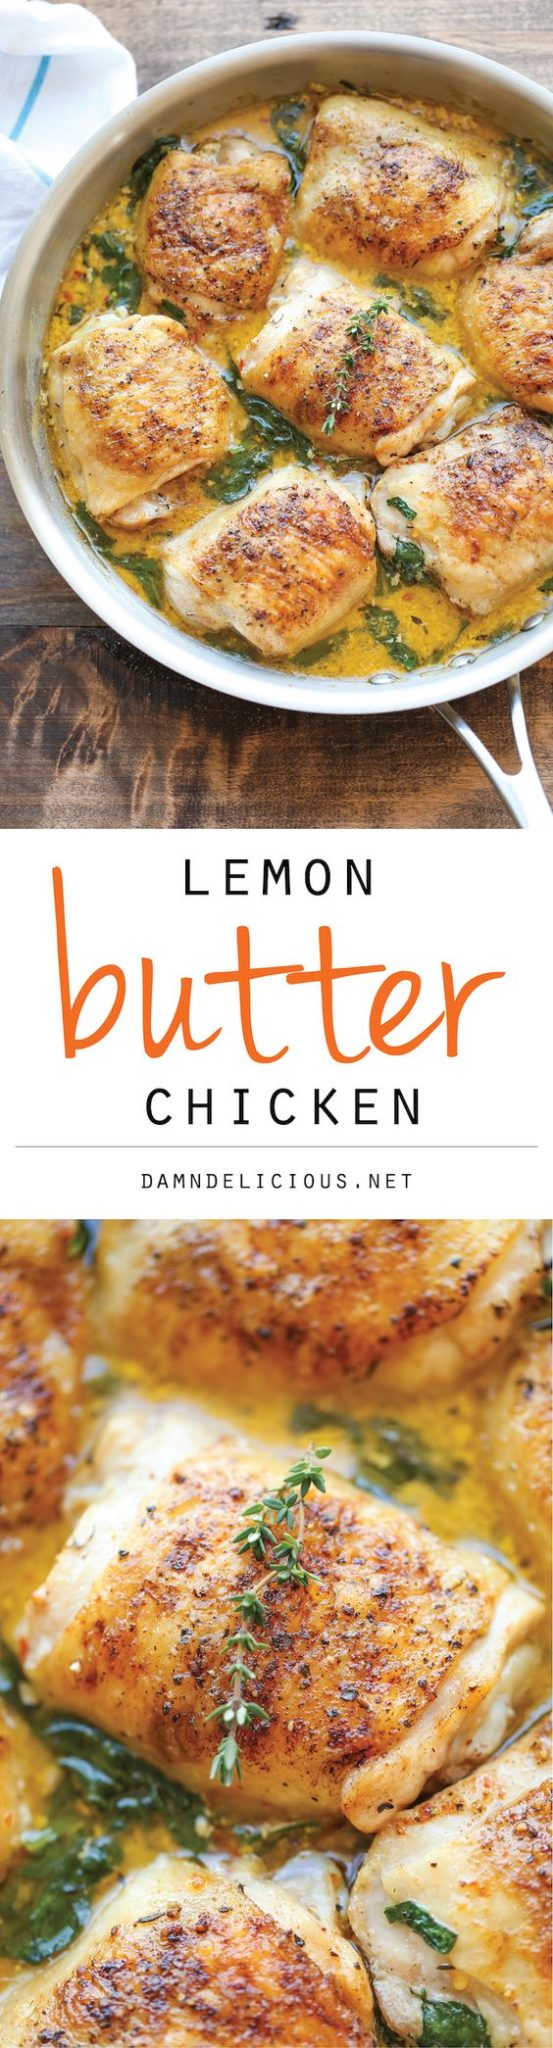 Chicken Recipes - Lemon Butter Chicken - Easy Crisp-Tender Chicken in Creamy Lemon Butter Sauce Recipe via Damn Delicious #chickenrecipes #popularchickenrecipes #chicken #easychickenrecipes #chickenbreastrecipes #easylunches #easydinners #simplefamilymeals #simplefamilyrecipes #simplerecipes